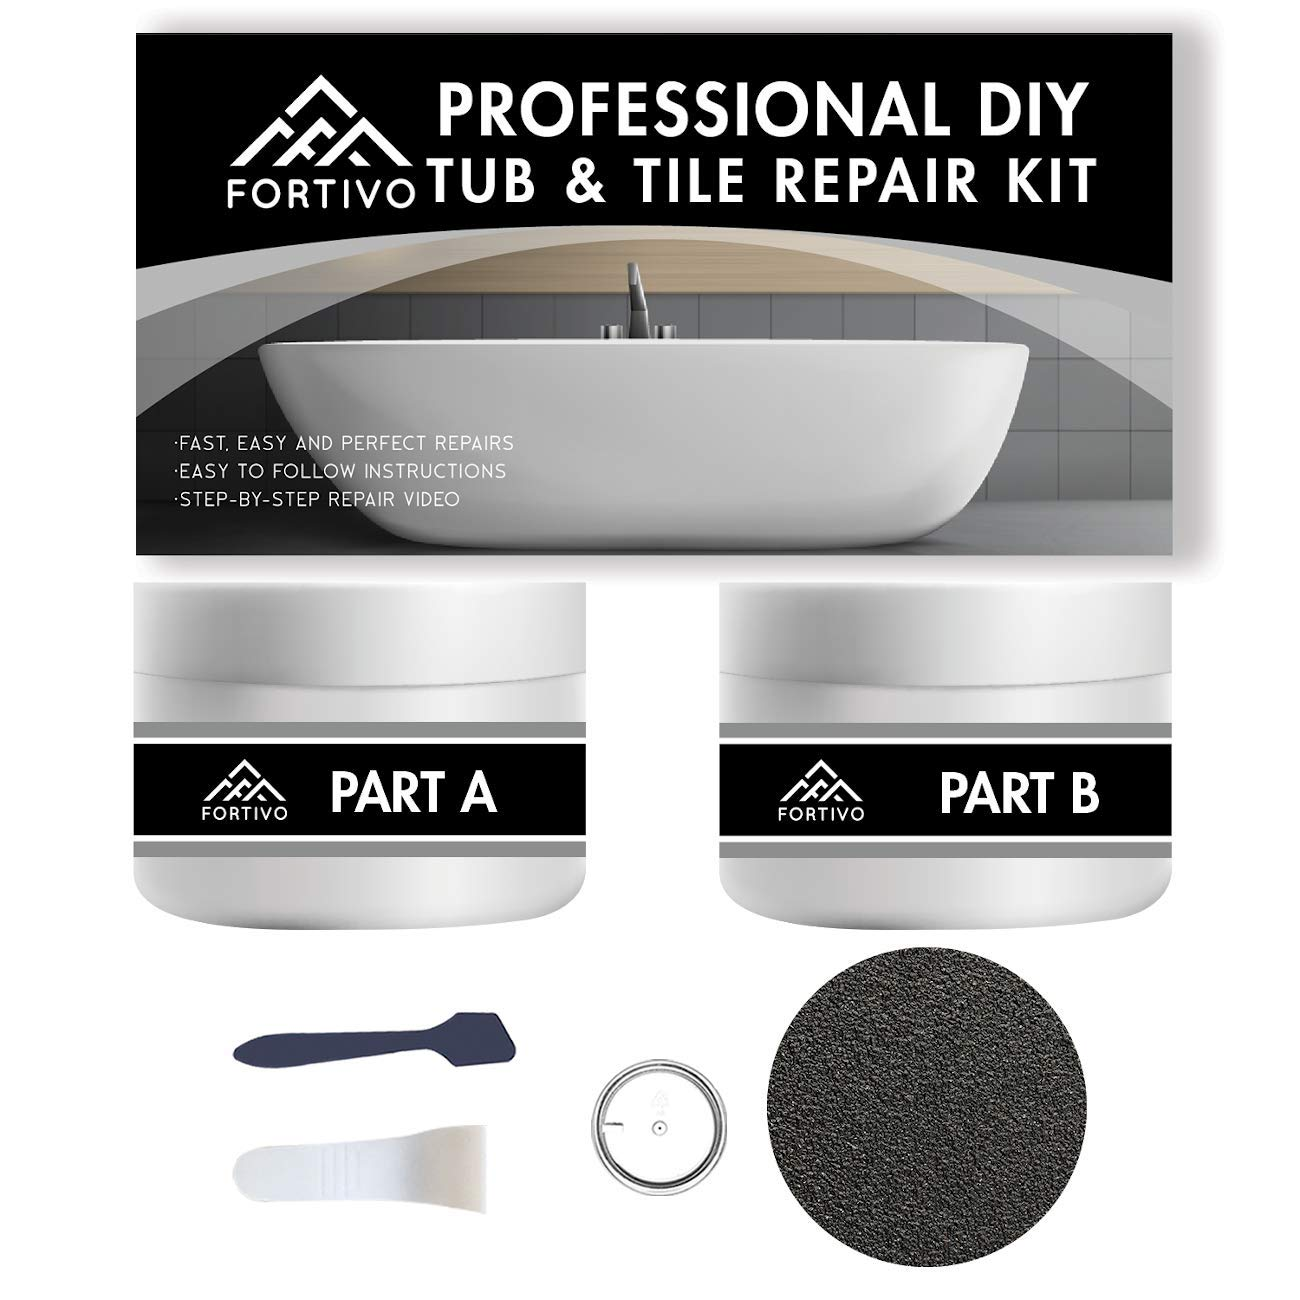 Tub Repair Kit White for Acrylic, Porcelain, Enamel & Fiberglass Tub Repair Kit for Sink, Shower & Countertop - Bathtub Refinishing Kit for Cracked Bathtub Scratches - Shower Bases & Pans